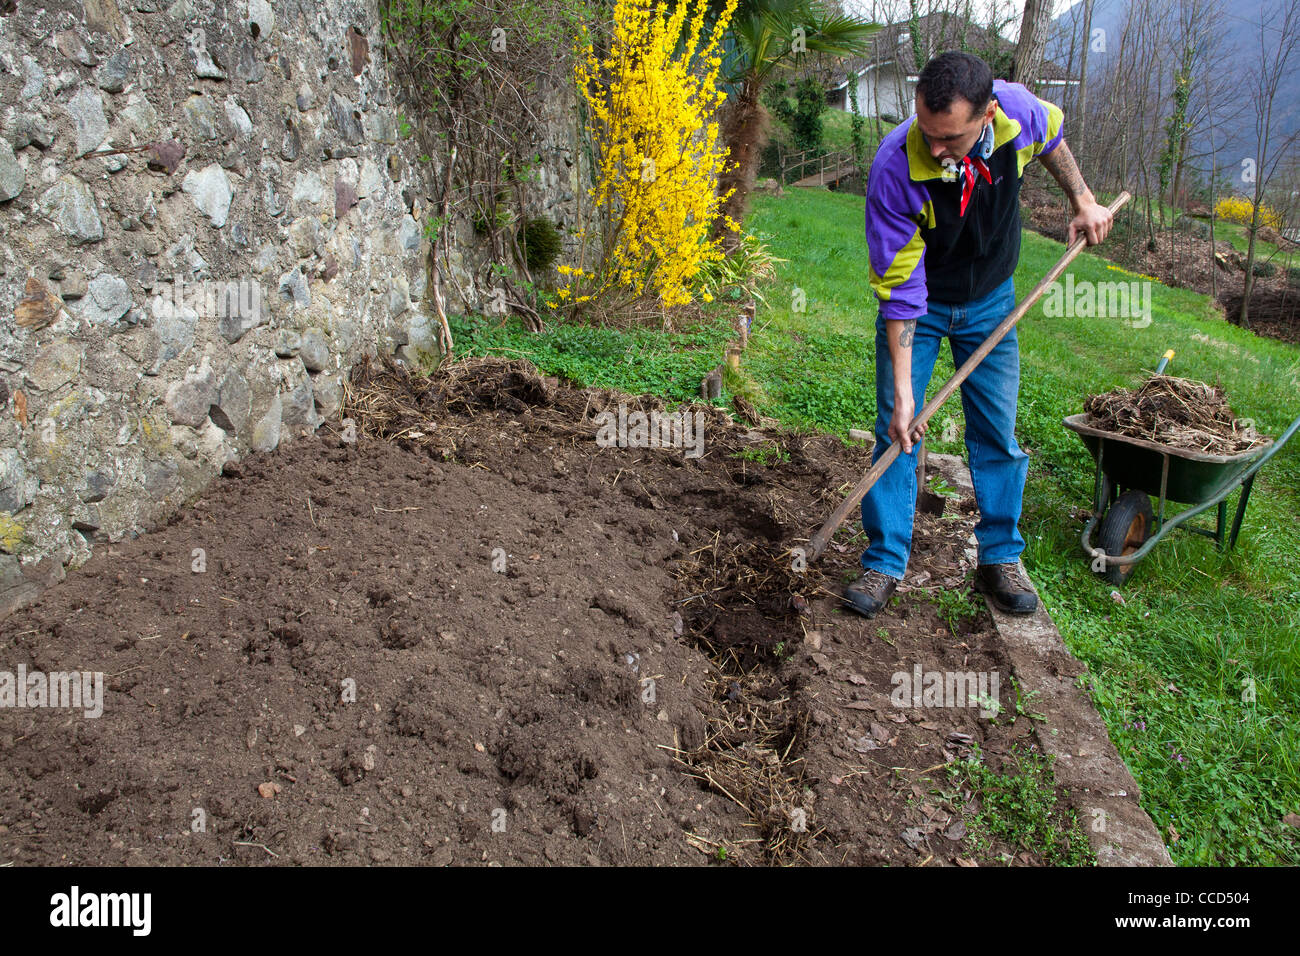 Fertilizing with manure and digging, step 1, manure is incorporated into the soil - Stock Image